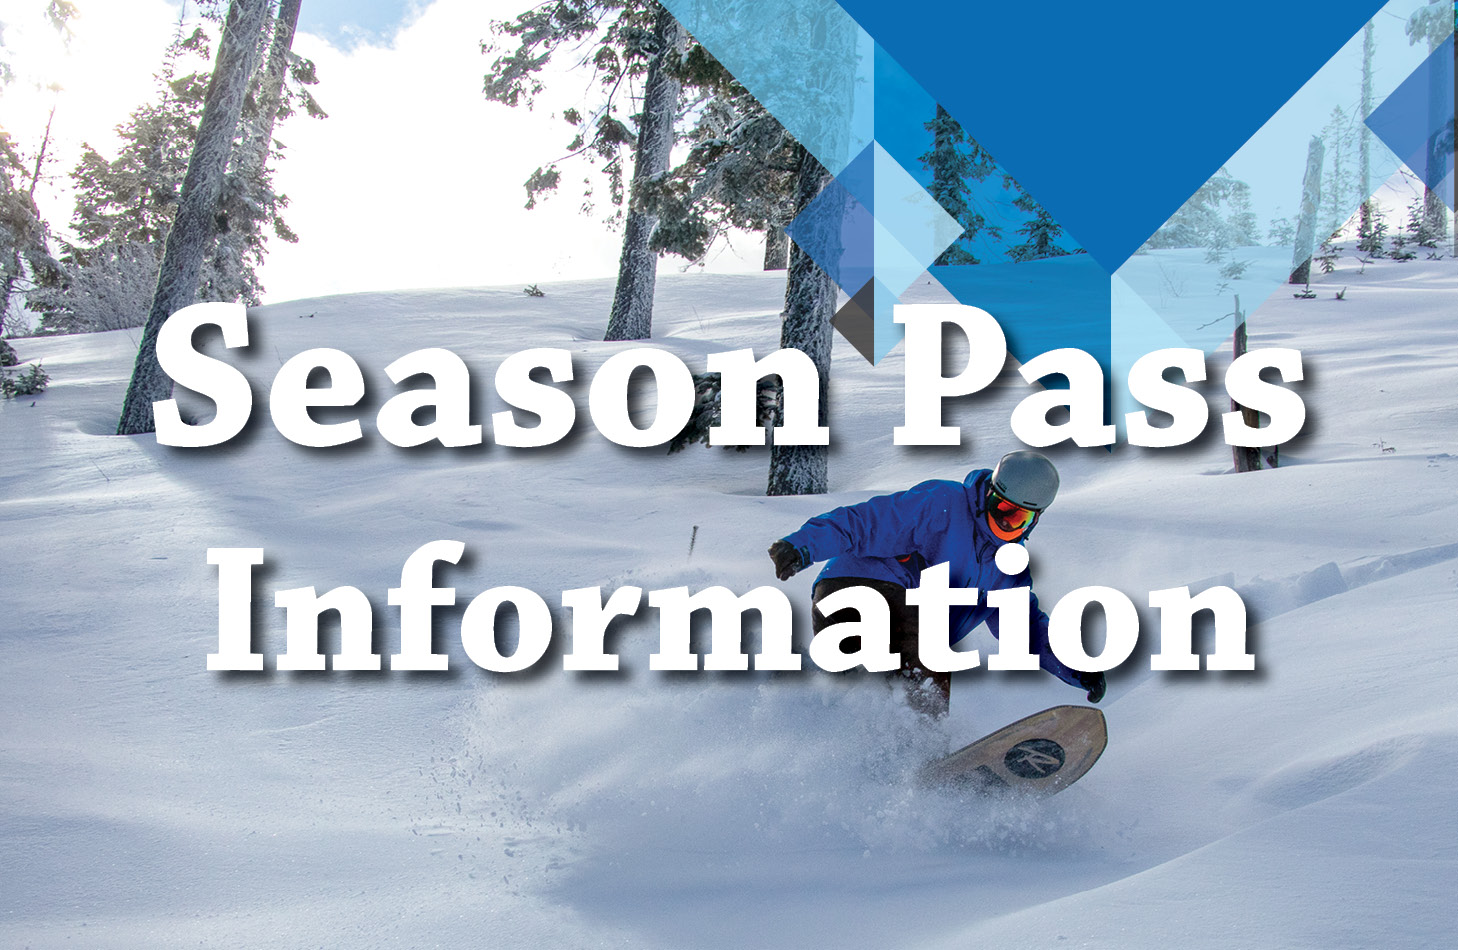 Season Pass Information